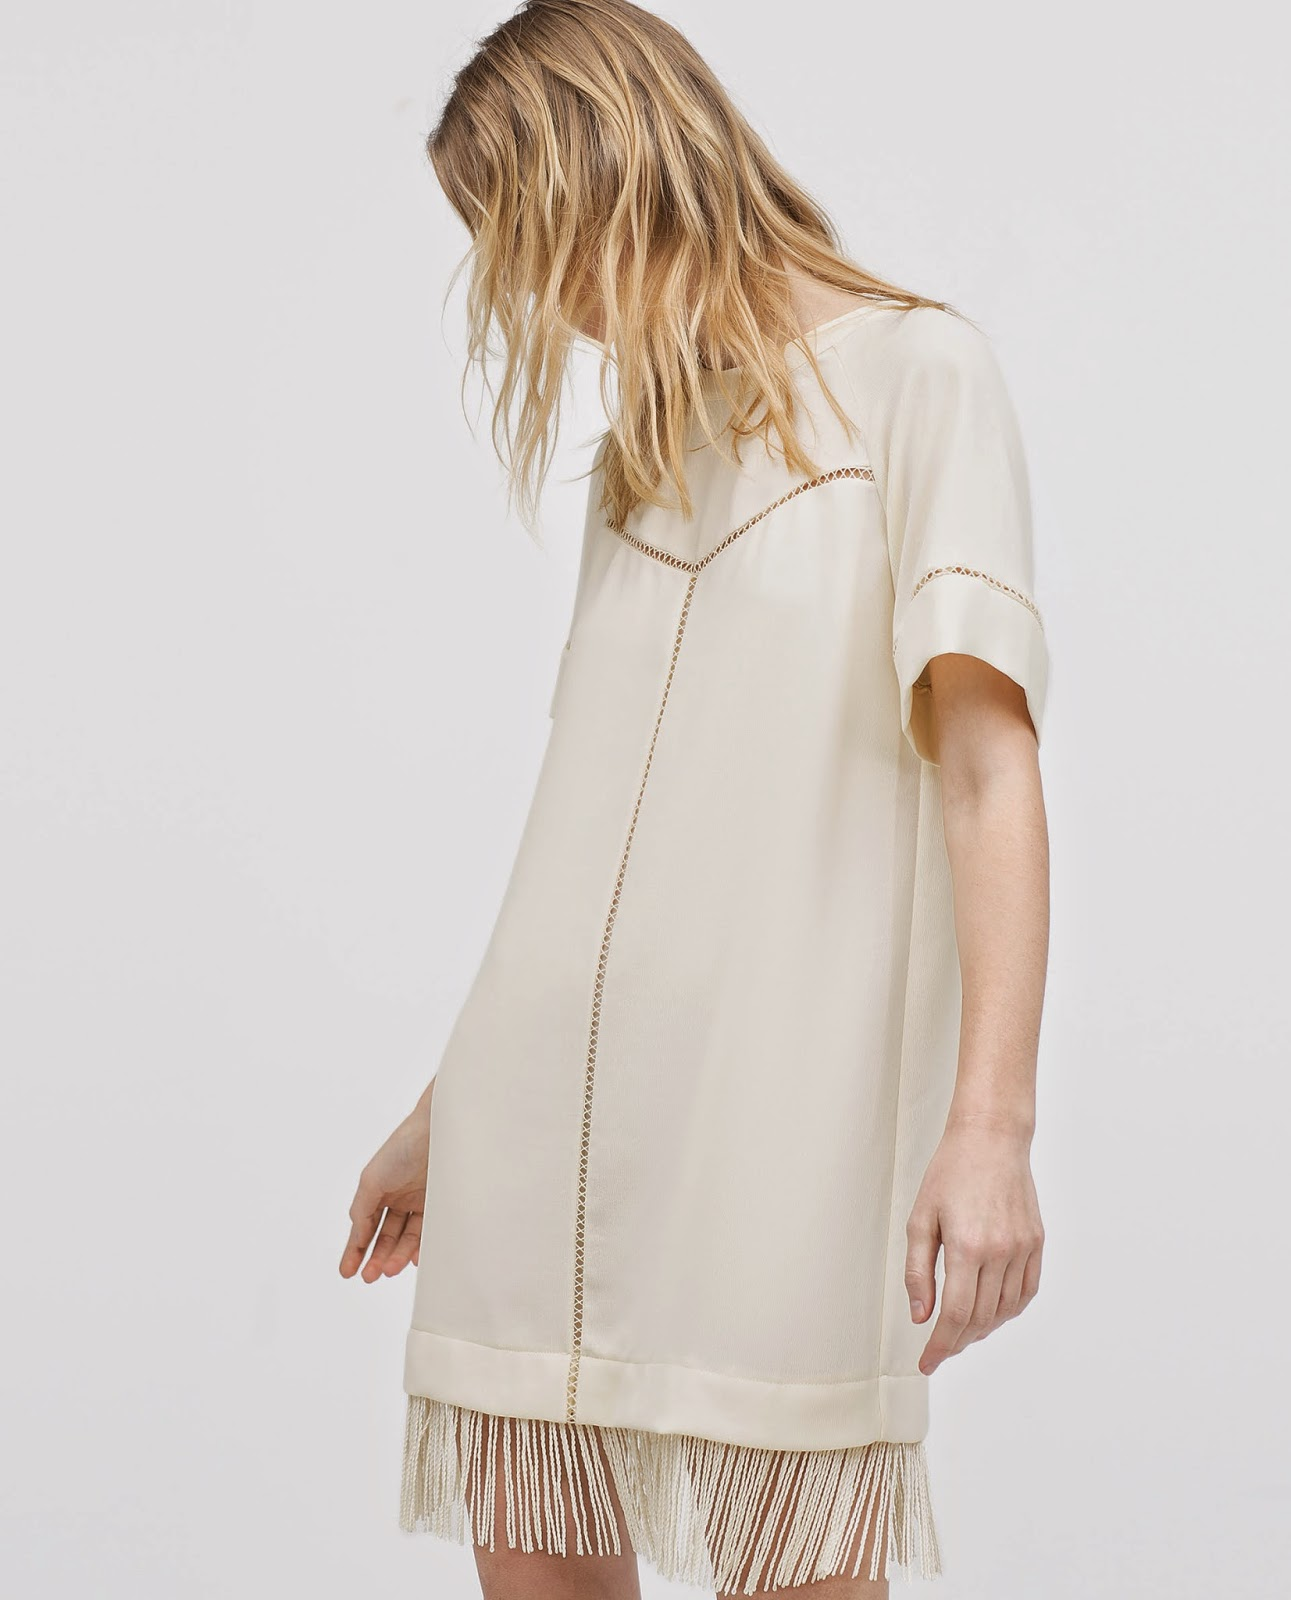 zara cream dress with fringe, dress with fringed  hem,